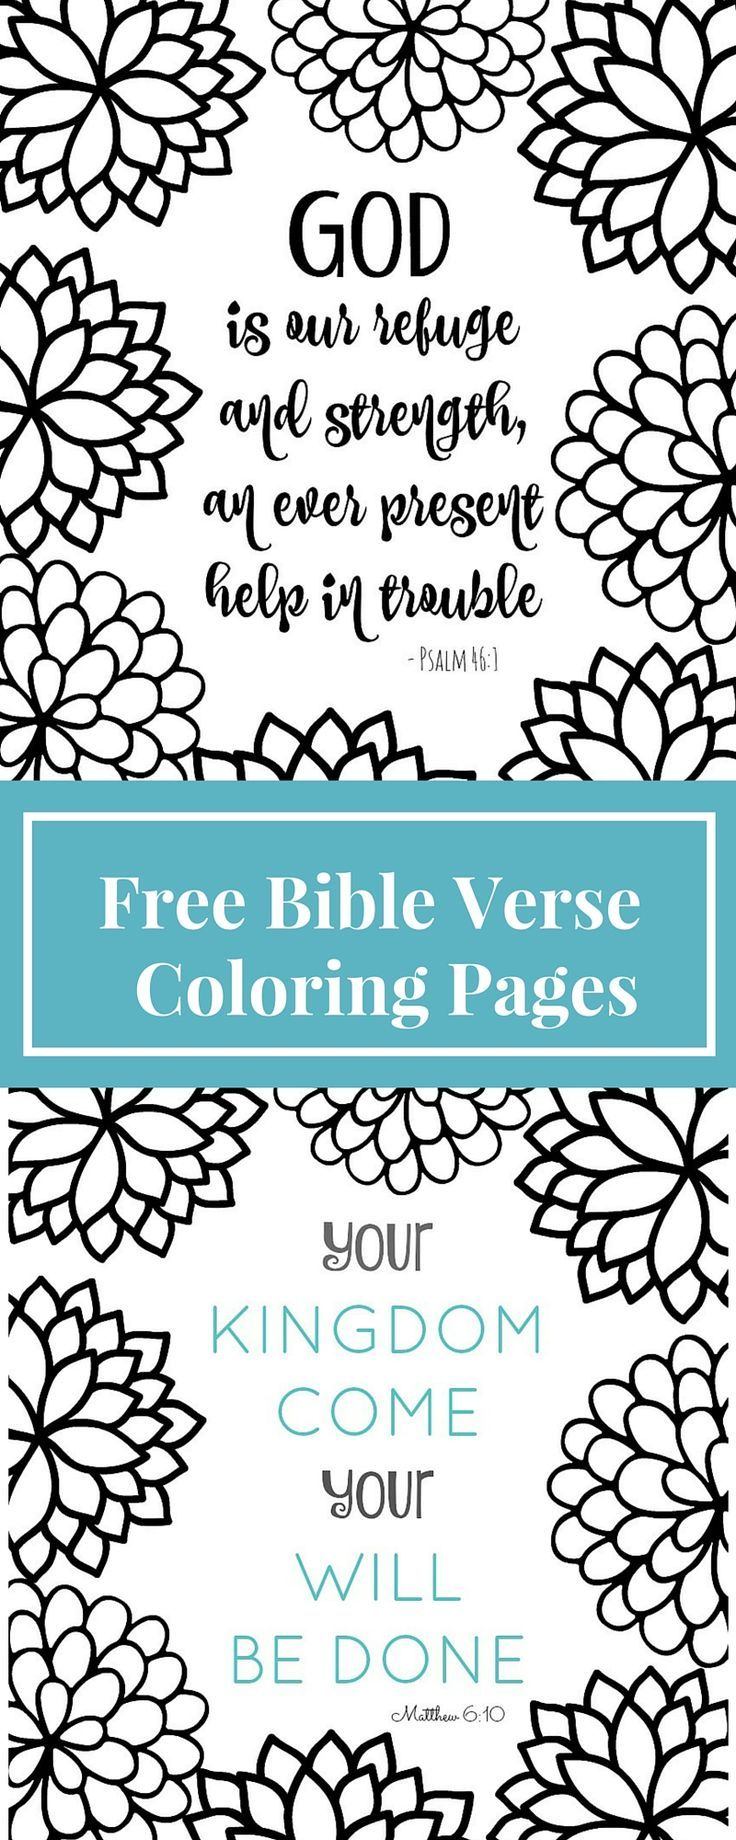 Coloring Pages Are For Grown Ups Now These Bible Verse Page Printables Fun Relaxing To Color This Blog Has Tons Of Free Printable Adult